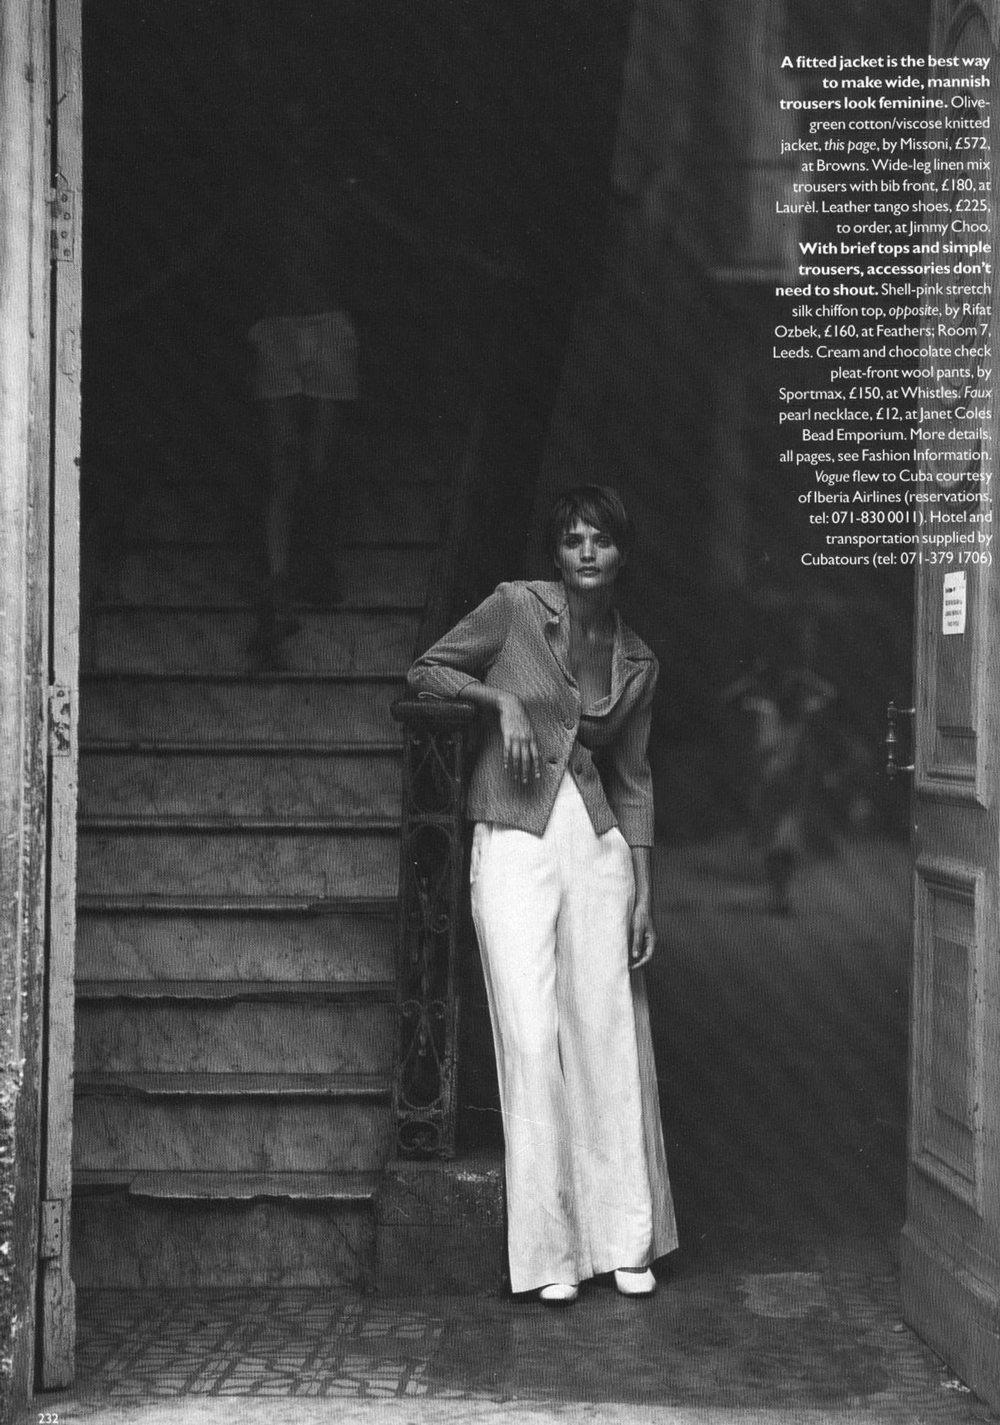 Helena Christensen in Our woman in Havana / Vogue UK March 1994 (photography: Mikael Jansson; styling: Kate Phelan) via fashioned by love british fashion blog